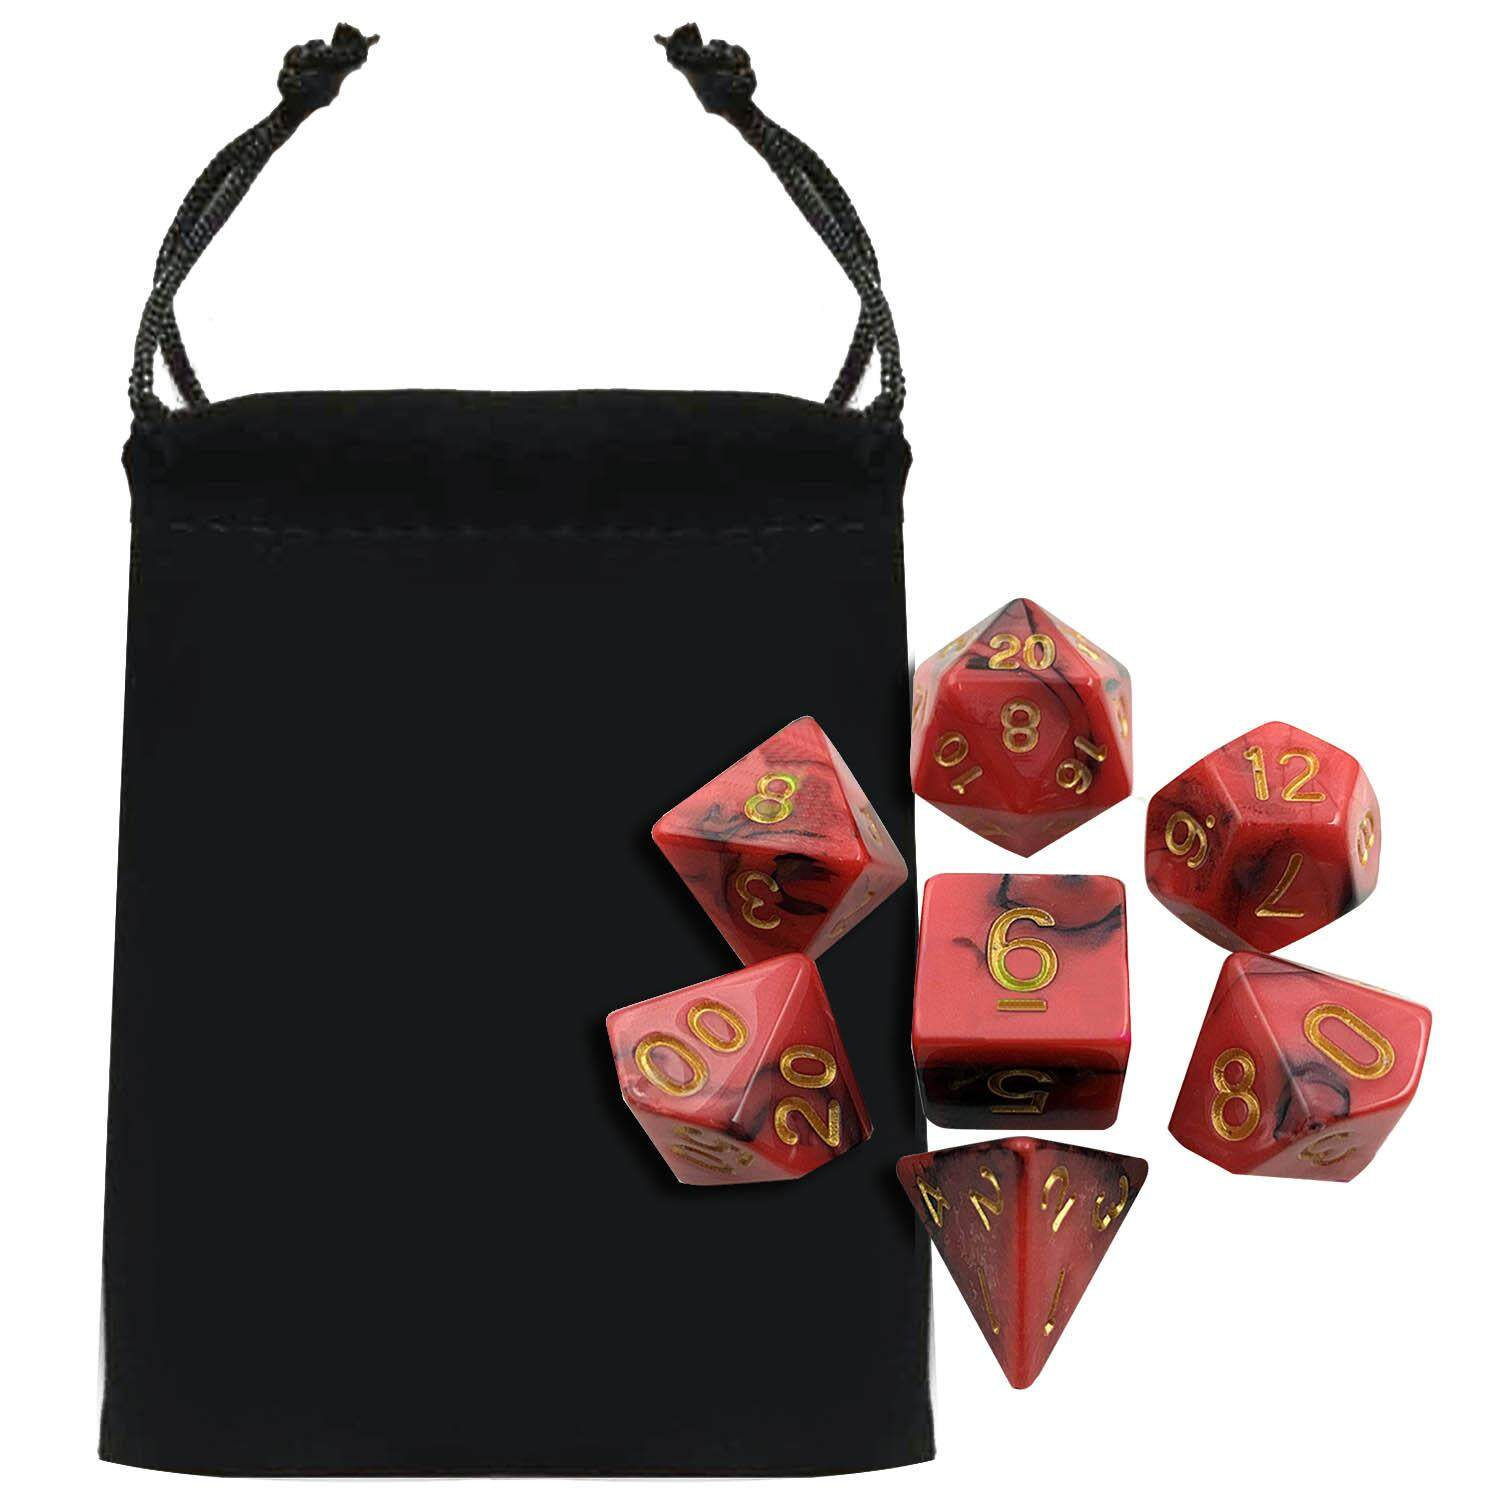 7 Pcs Acrylic Polyhedral Number Game Dice Set 7 Style D4 D6 D8 2d10 D12 D20 With Storage Pouch For Dungeons And Dragons Party Math Game Playing Red Mixed Black By Duha.